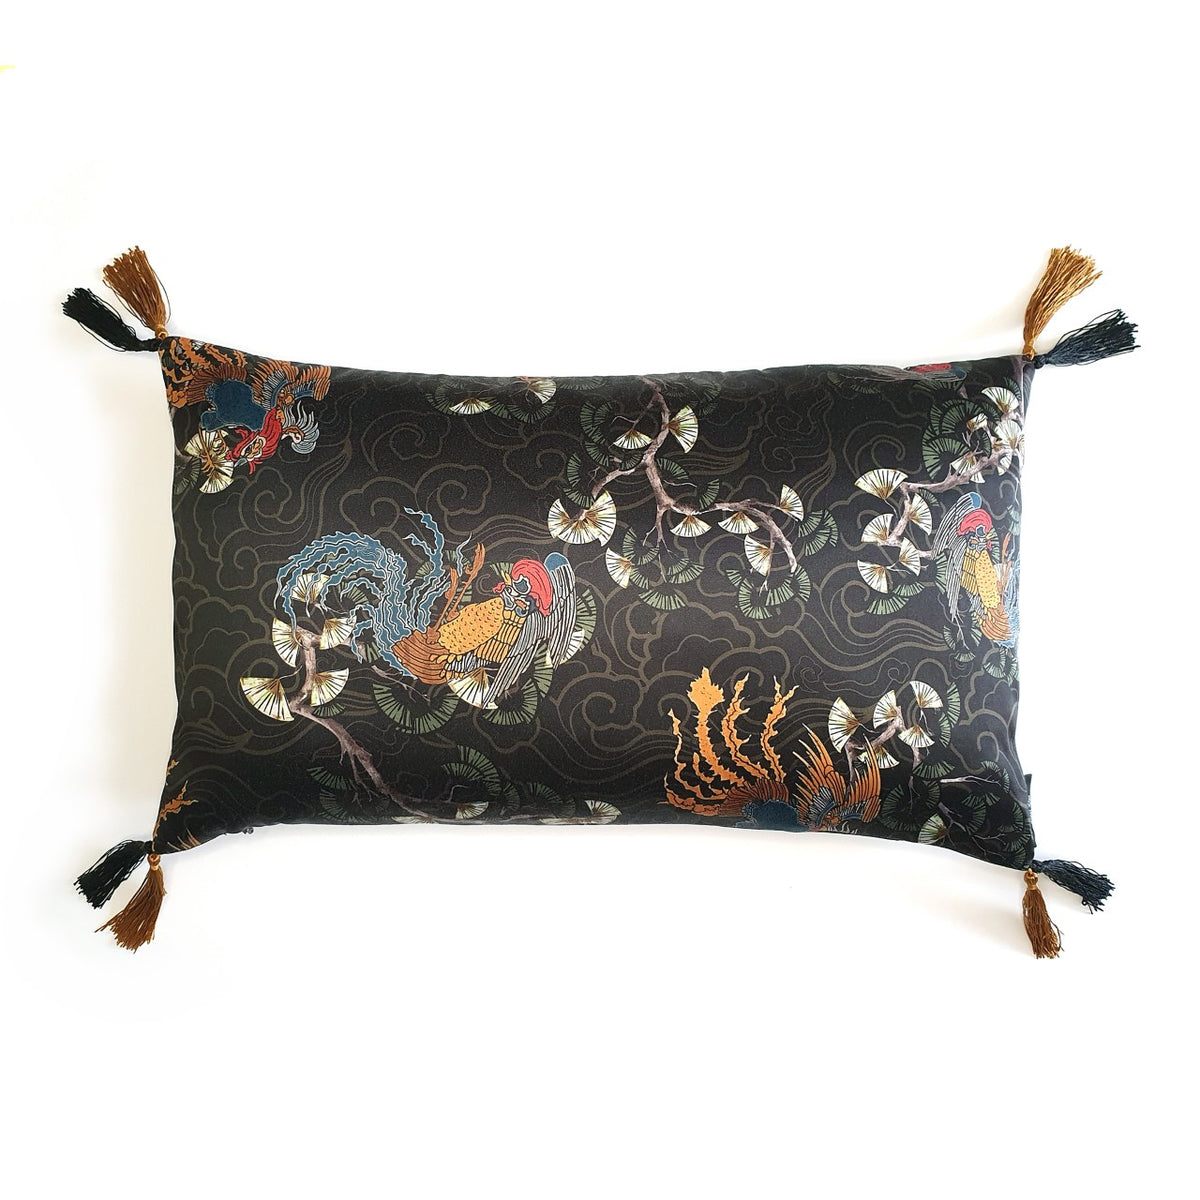 "Oriental Print Rectangle Tassel Cushion Handmade oriental print silky (polyester) cushion with contrast silky double tassels, approximately 12"" x 20"" (30cm x 50cm) with a concealed zip.  Comes with a polycotton cushion inner."